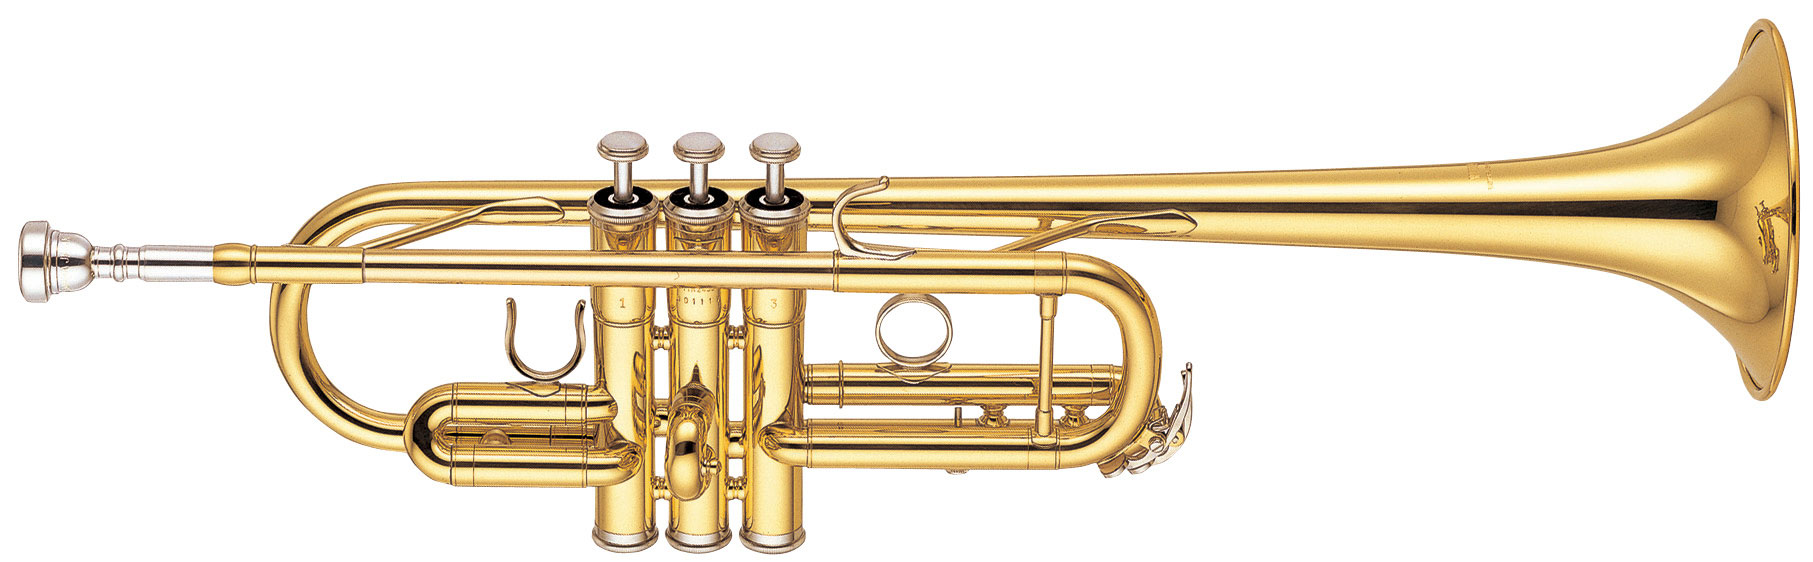 1813x562 > Trumpet Wallpapers